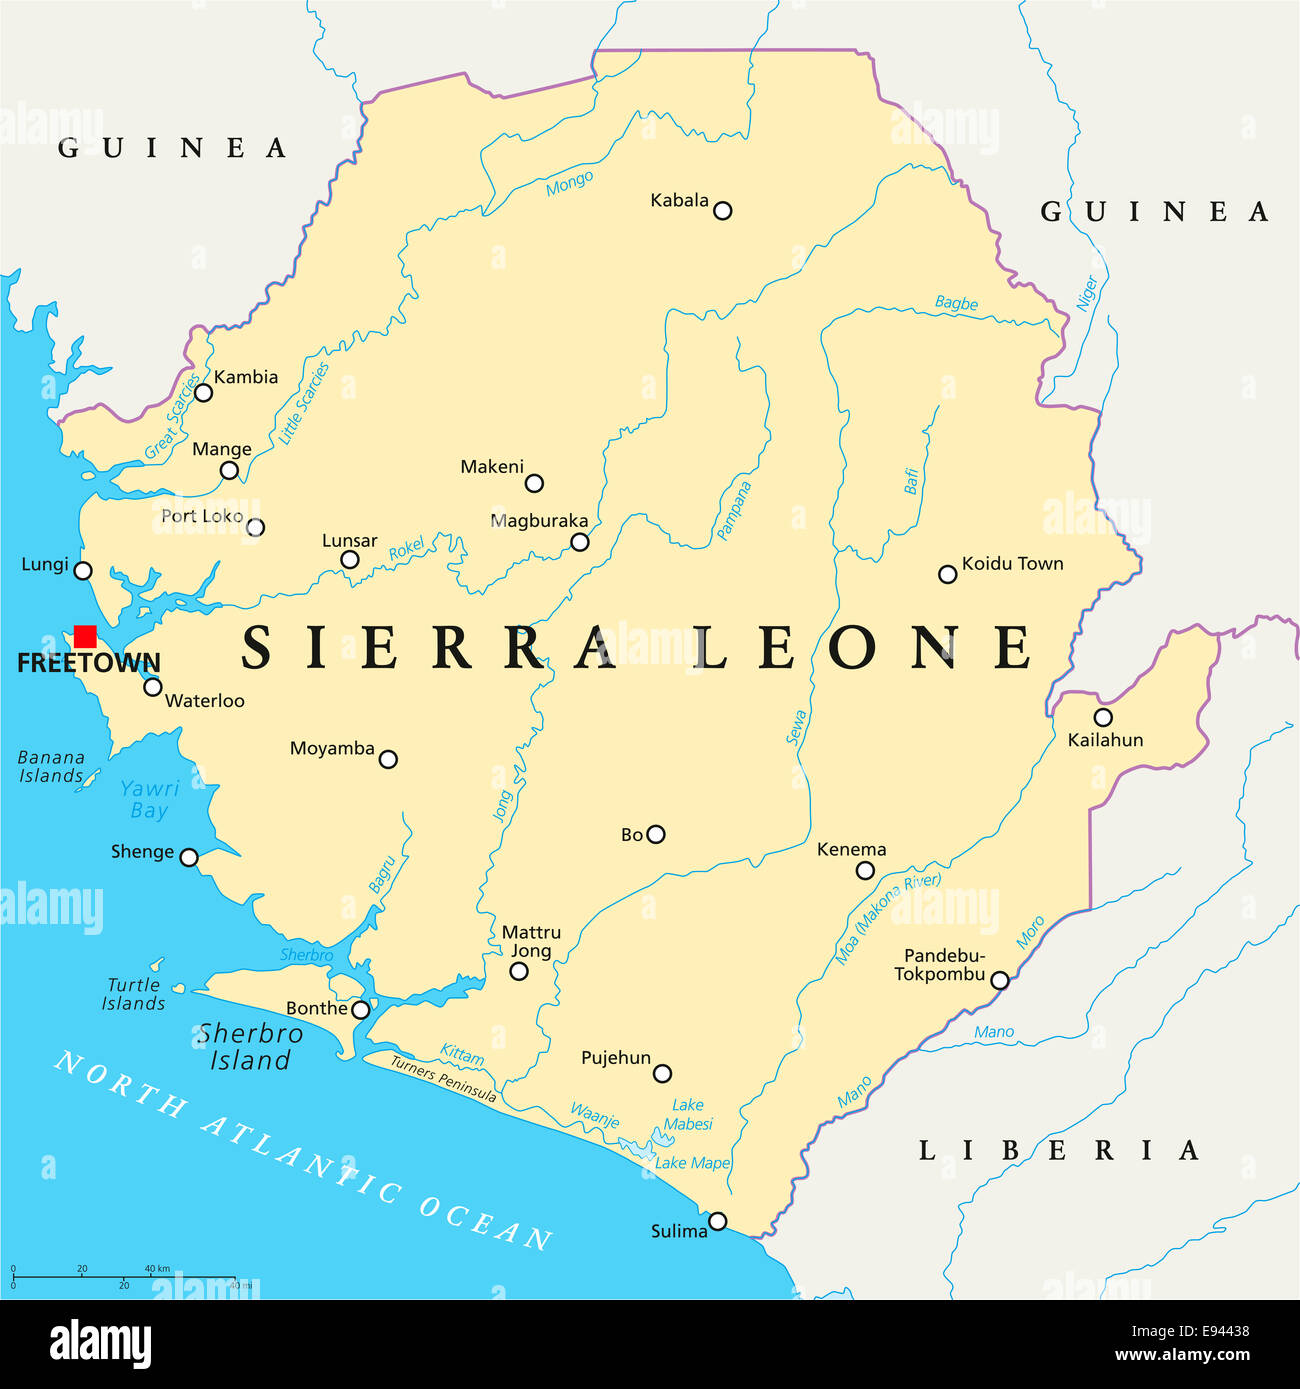 Sierra Leone Political Map With Capital Freetown National Borders - Sierra leone map